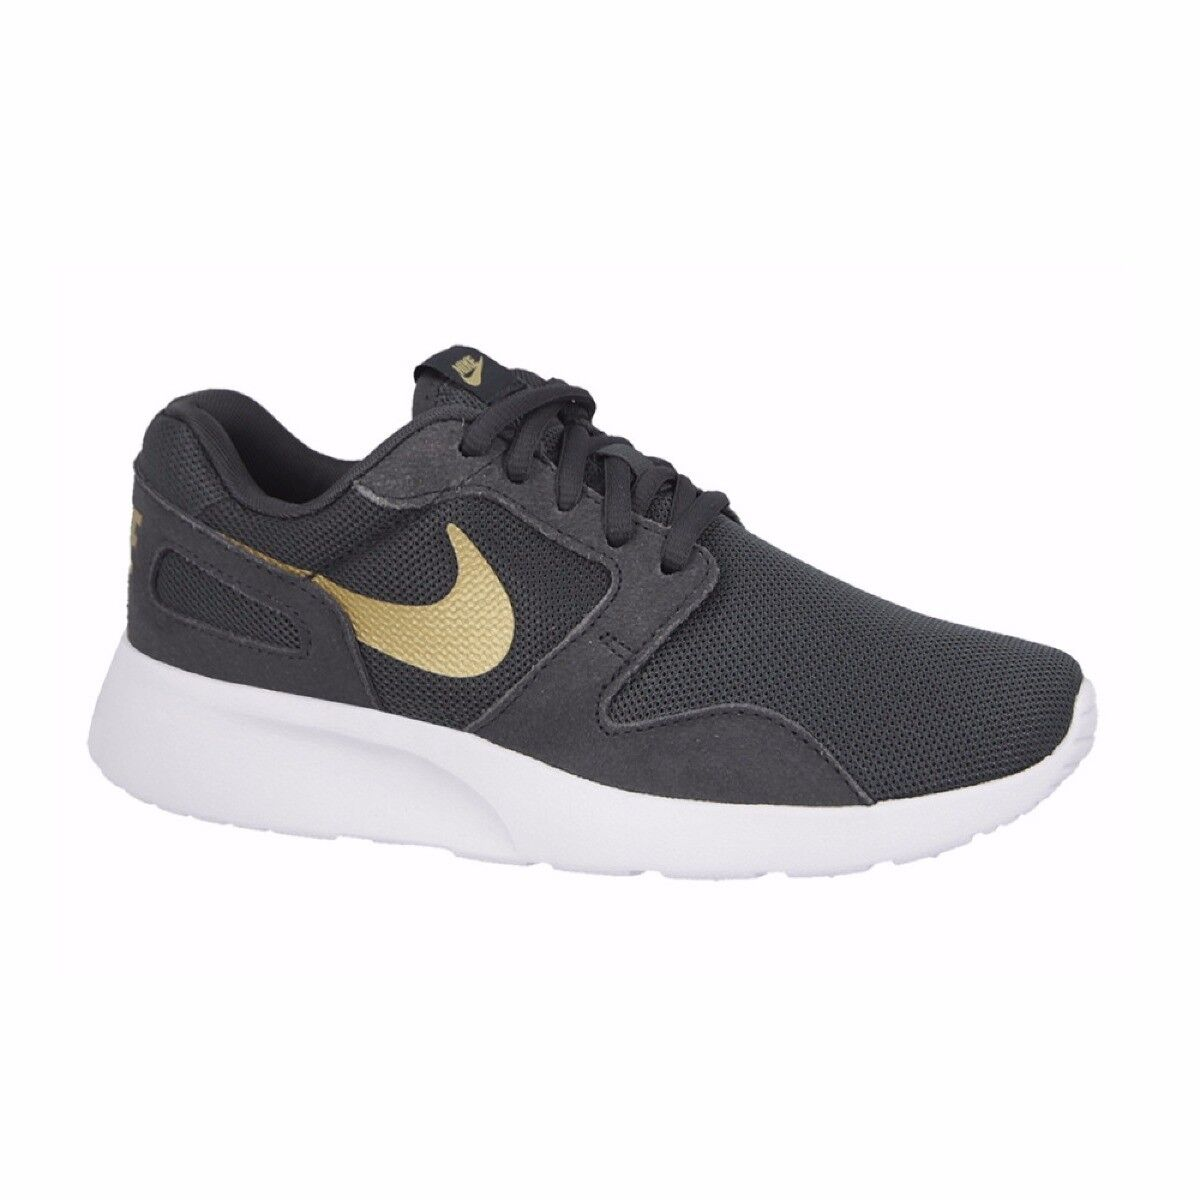 NIKE AIR KAISHI WOMENS TRAINERS SIZE 3 to 8 ANTHRACITE RUNNING SHOES NEW LIGHT